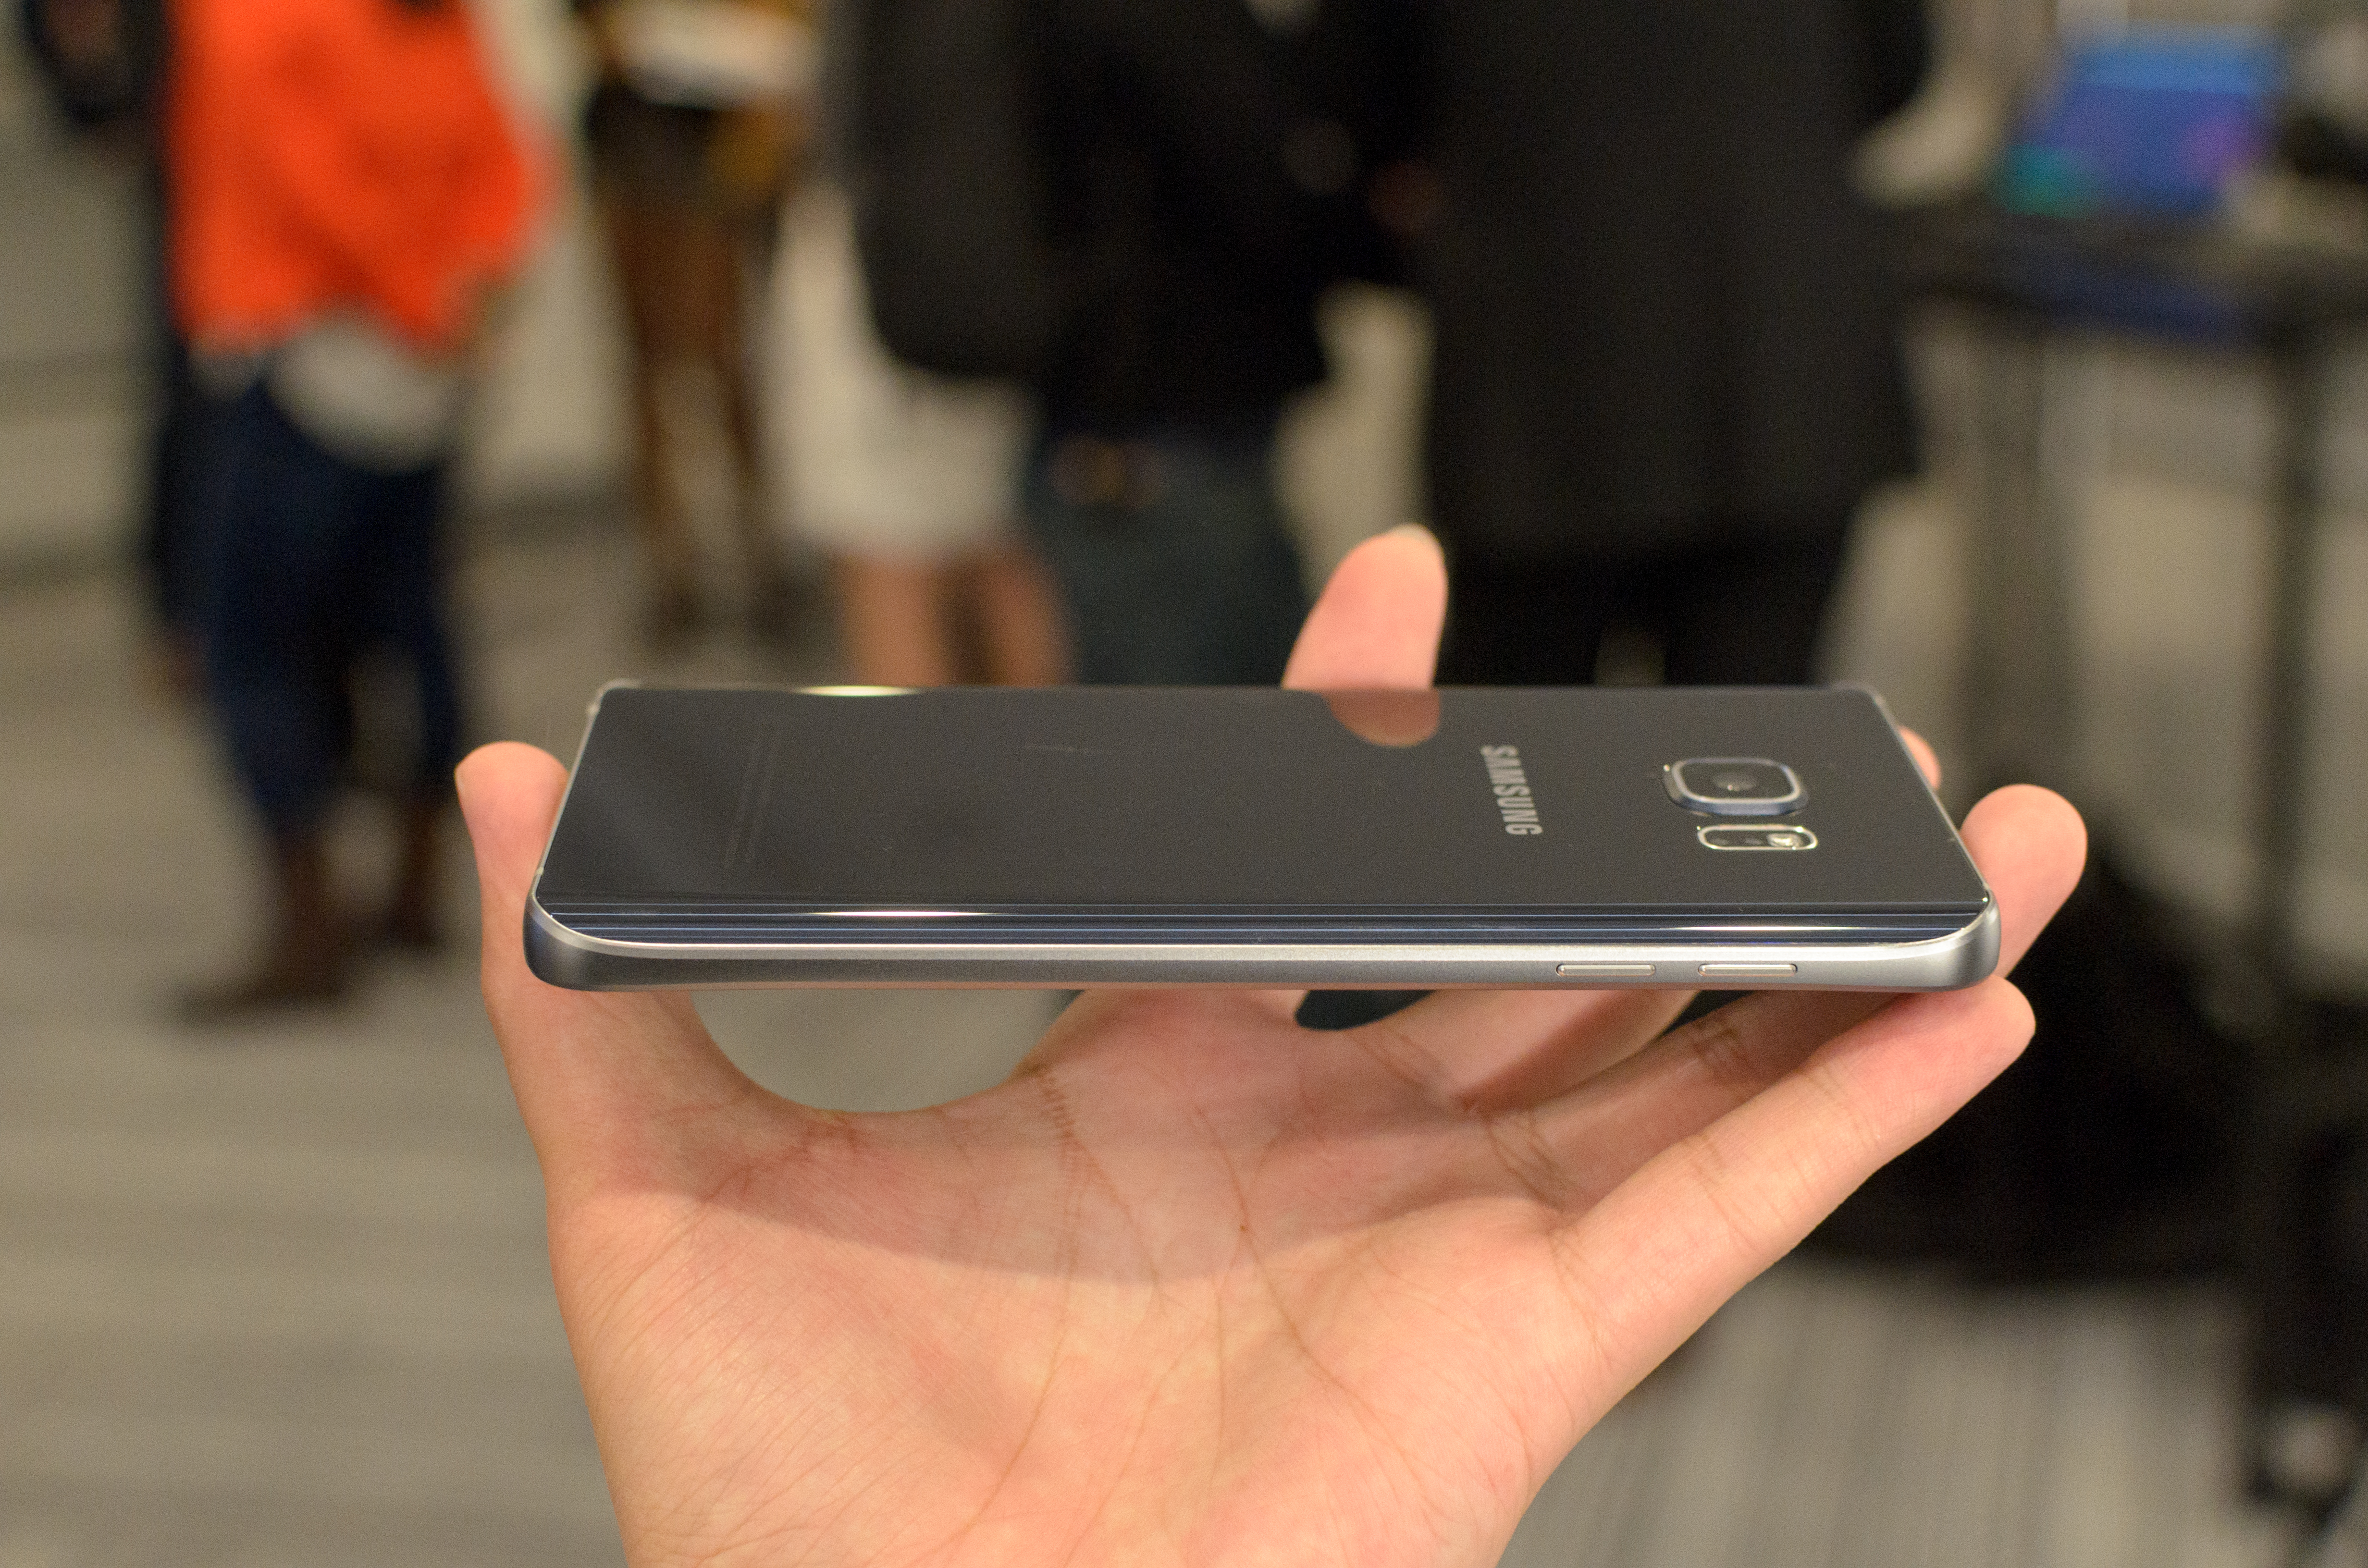 Hands On With the Samsung Galaxy Note 5 and Samsung Galaxy S6 edge+